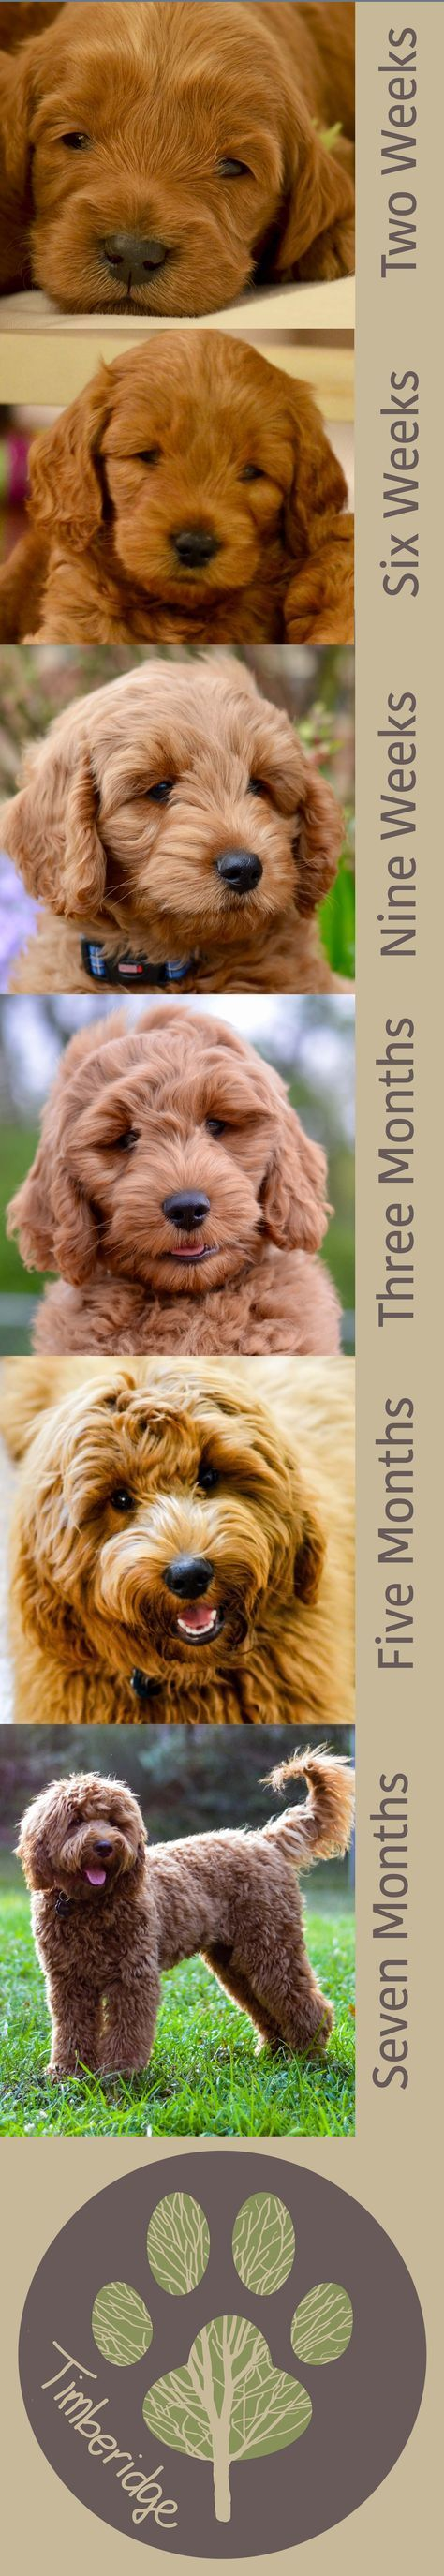 Goldendoodle Puppy Time Lapse watch a puppy grow up!